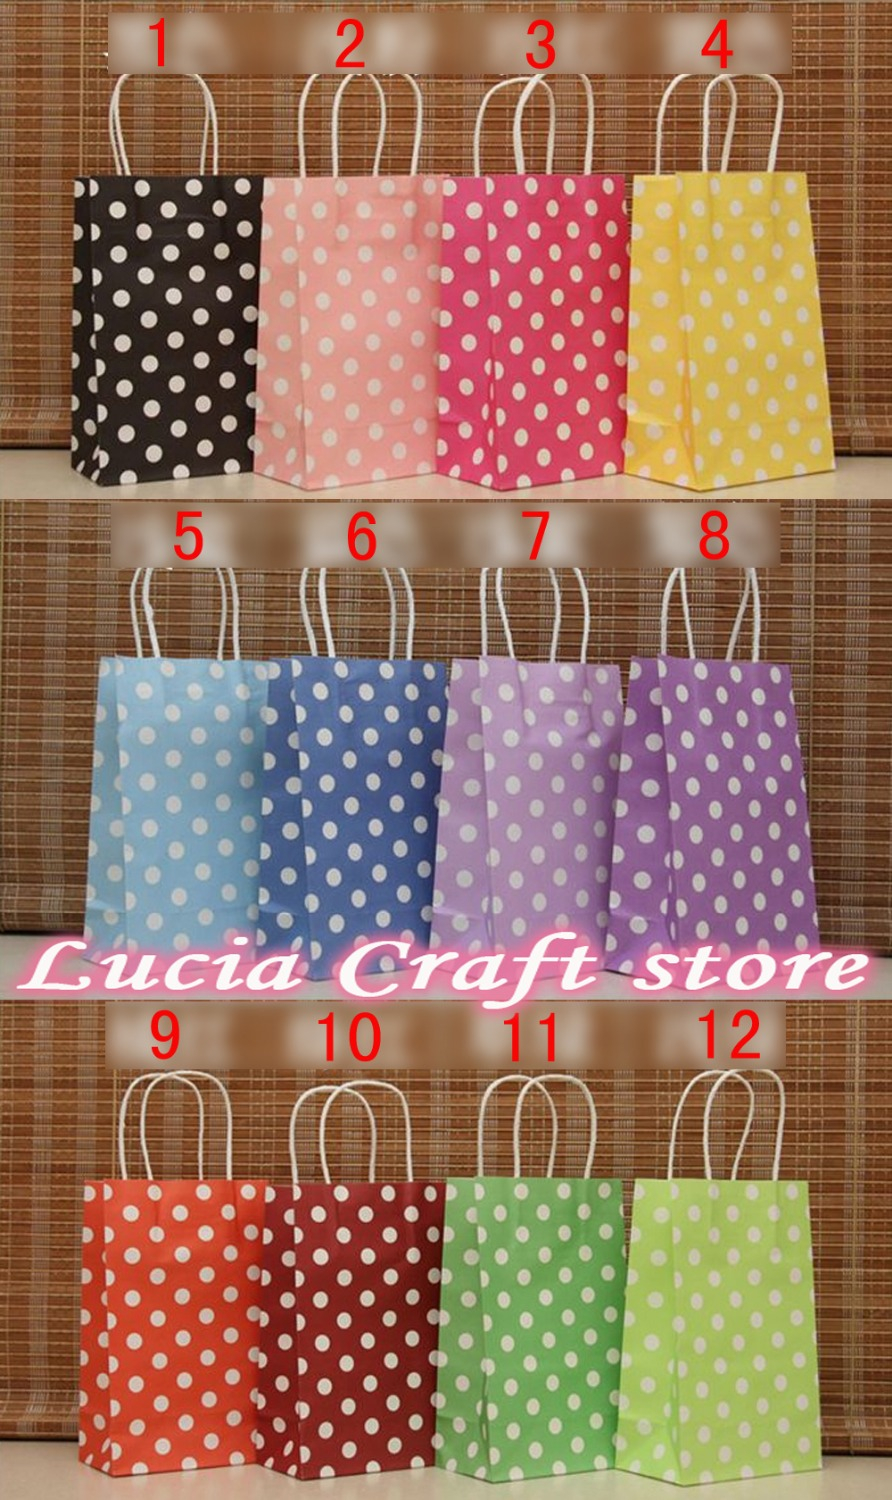 3 Designs of Cute Crafts Using Paper Bags Sale Lucia Crafts 21138cm Polka Dot Kraft Paper Gift Bag